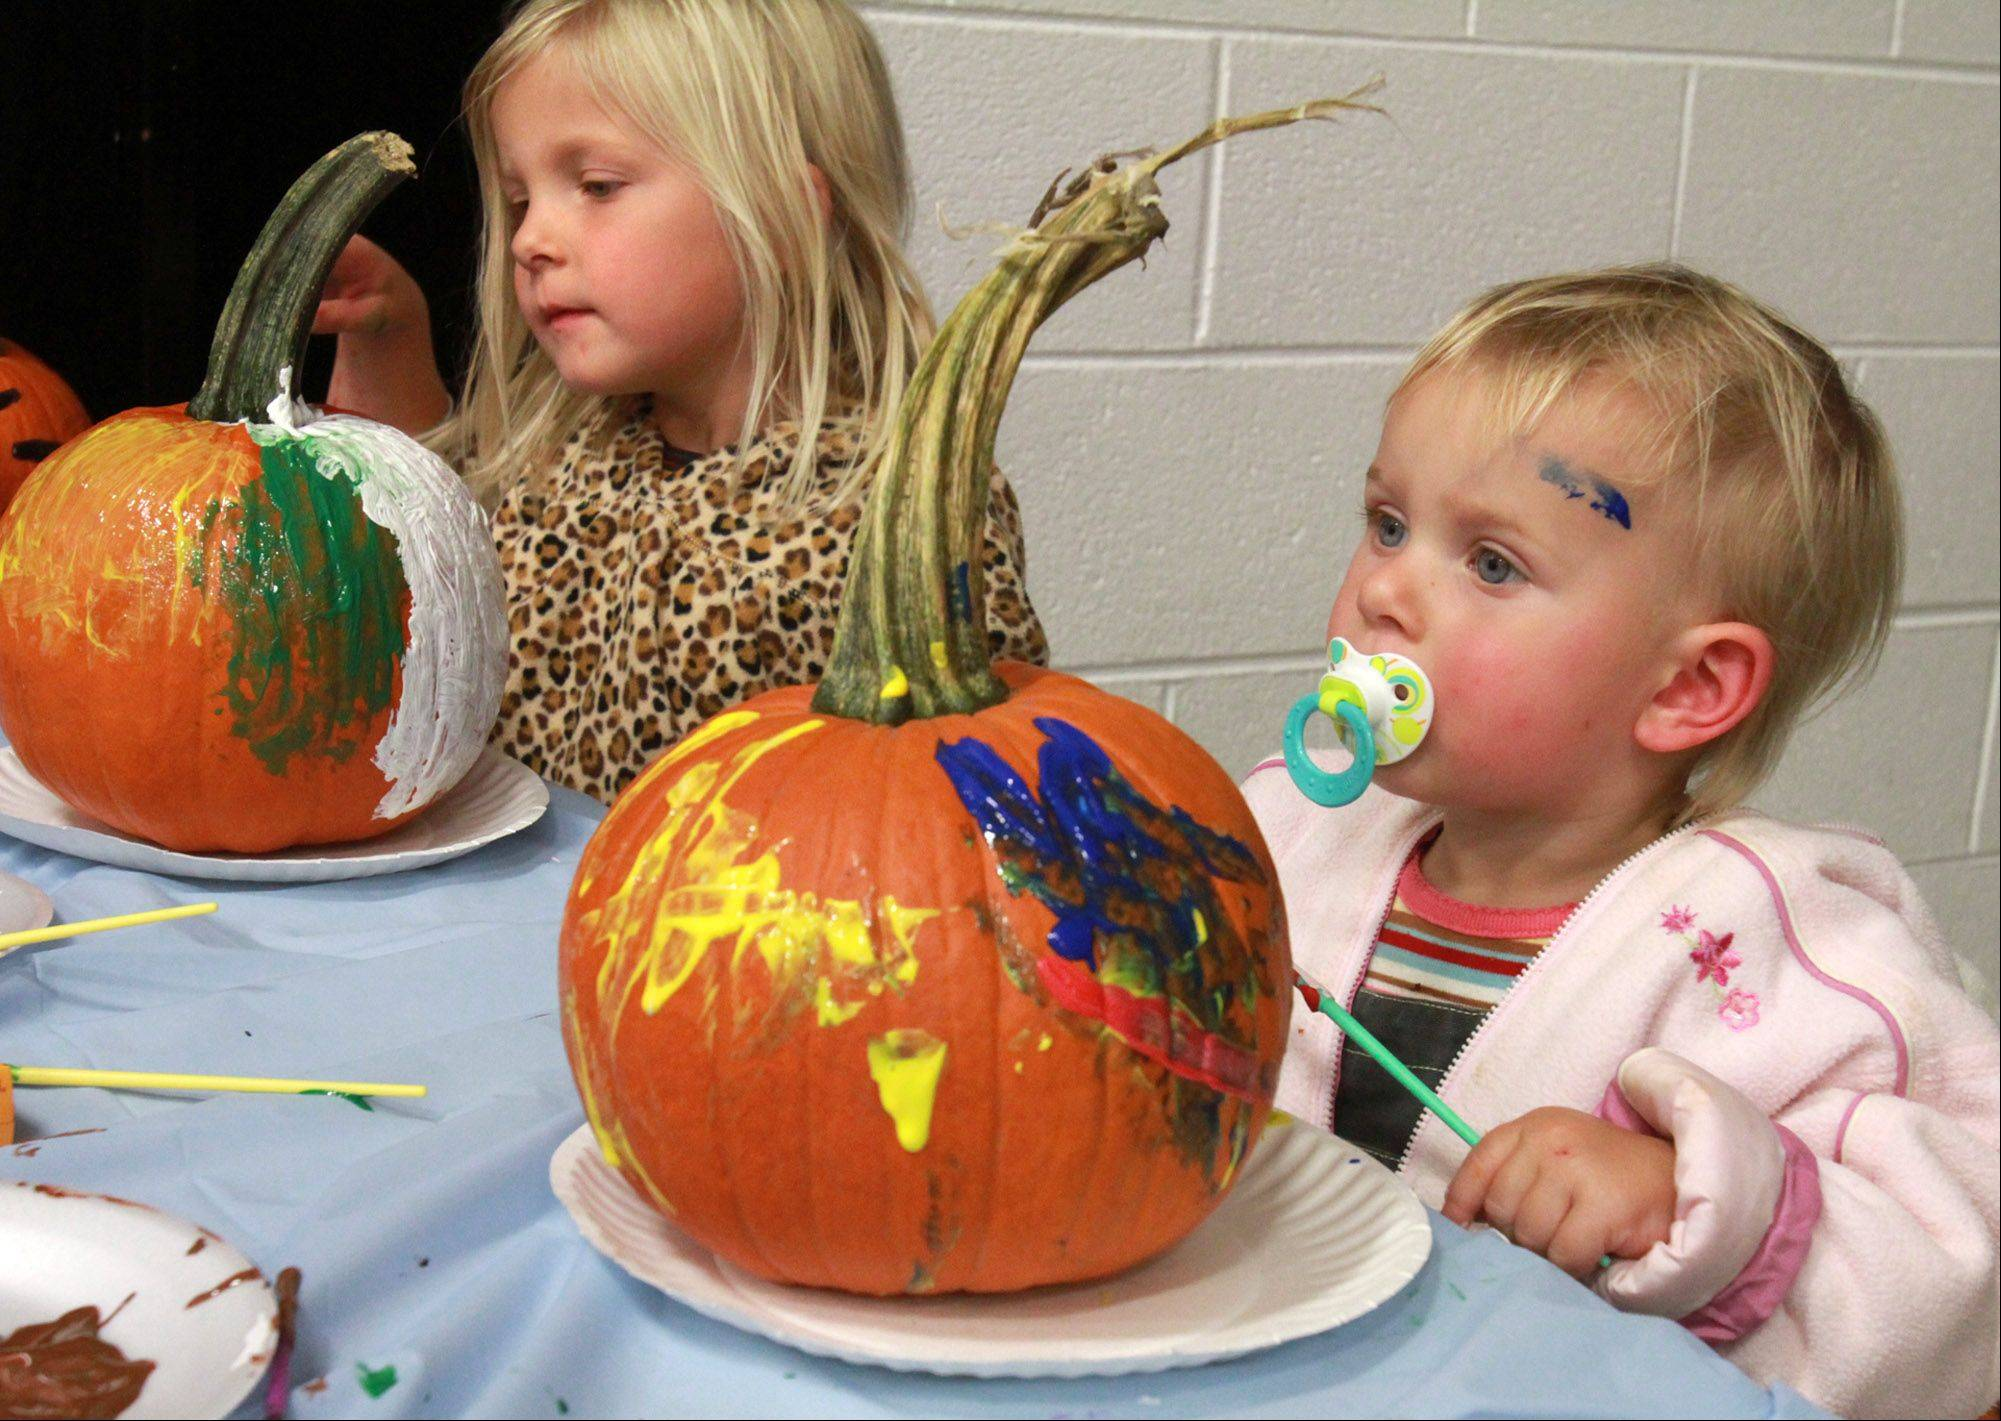 18-month-old Lucy Gross and her sister Oletta, 4, both of Barrington paint pumpkins at Hough Street School in Barrington on Saturday, October 13. The event was moved indoors from Memorial Park due to rain.